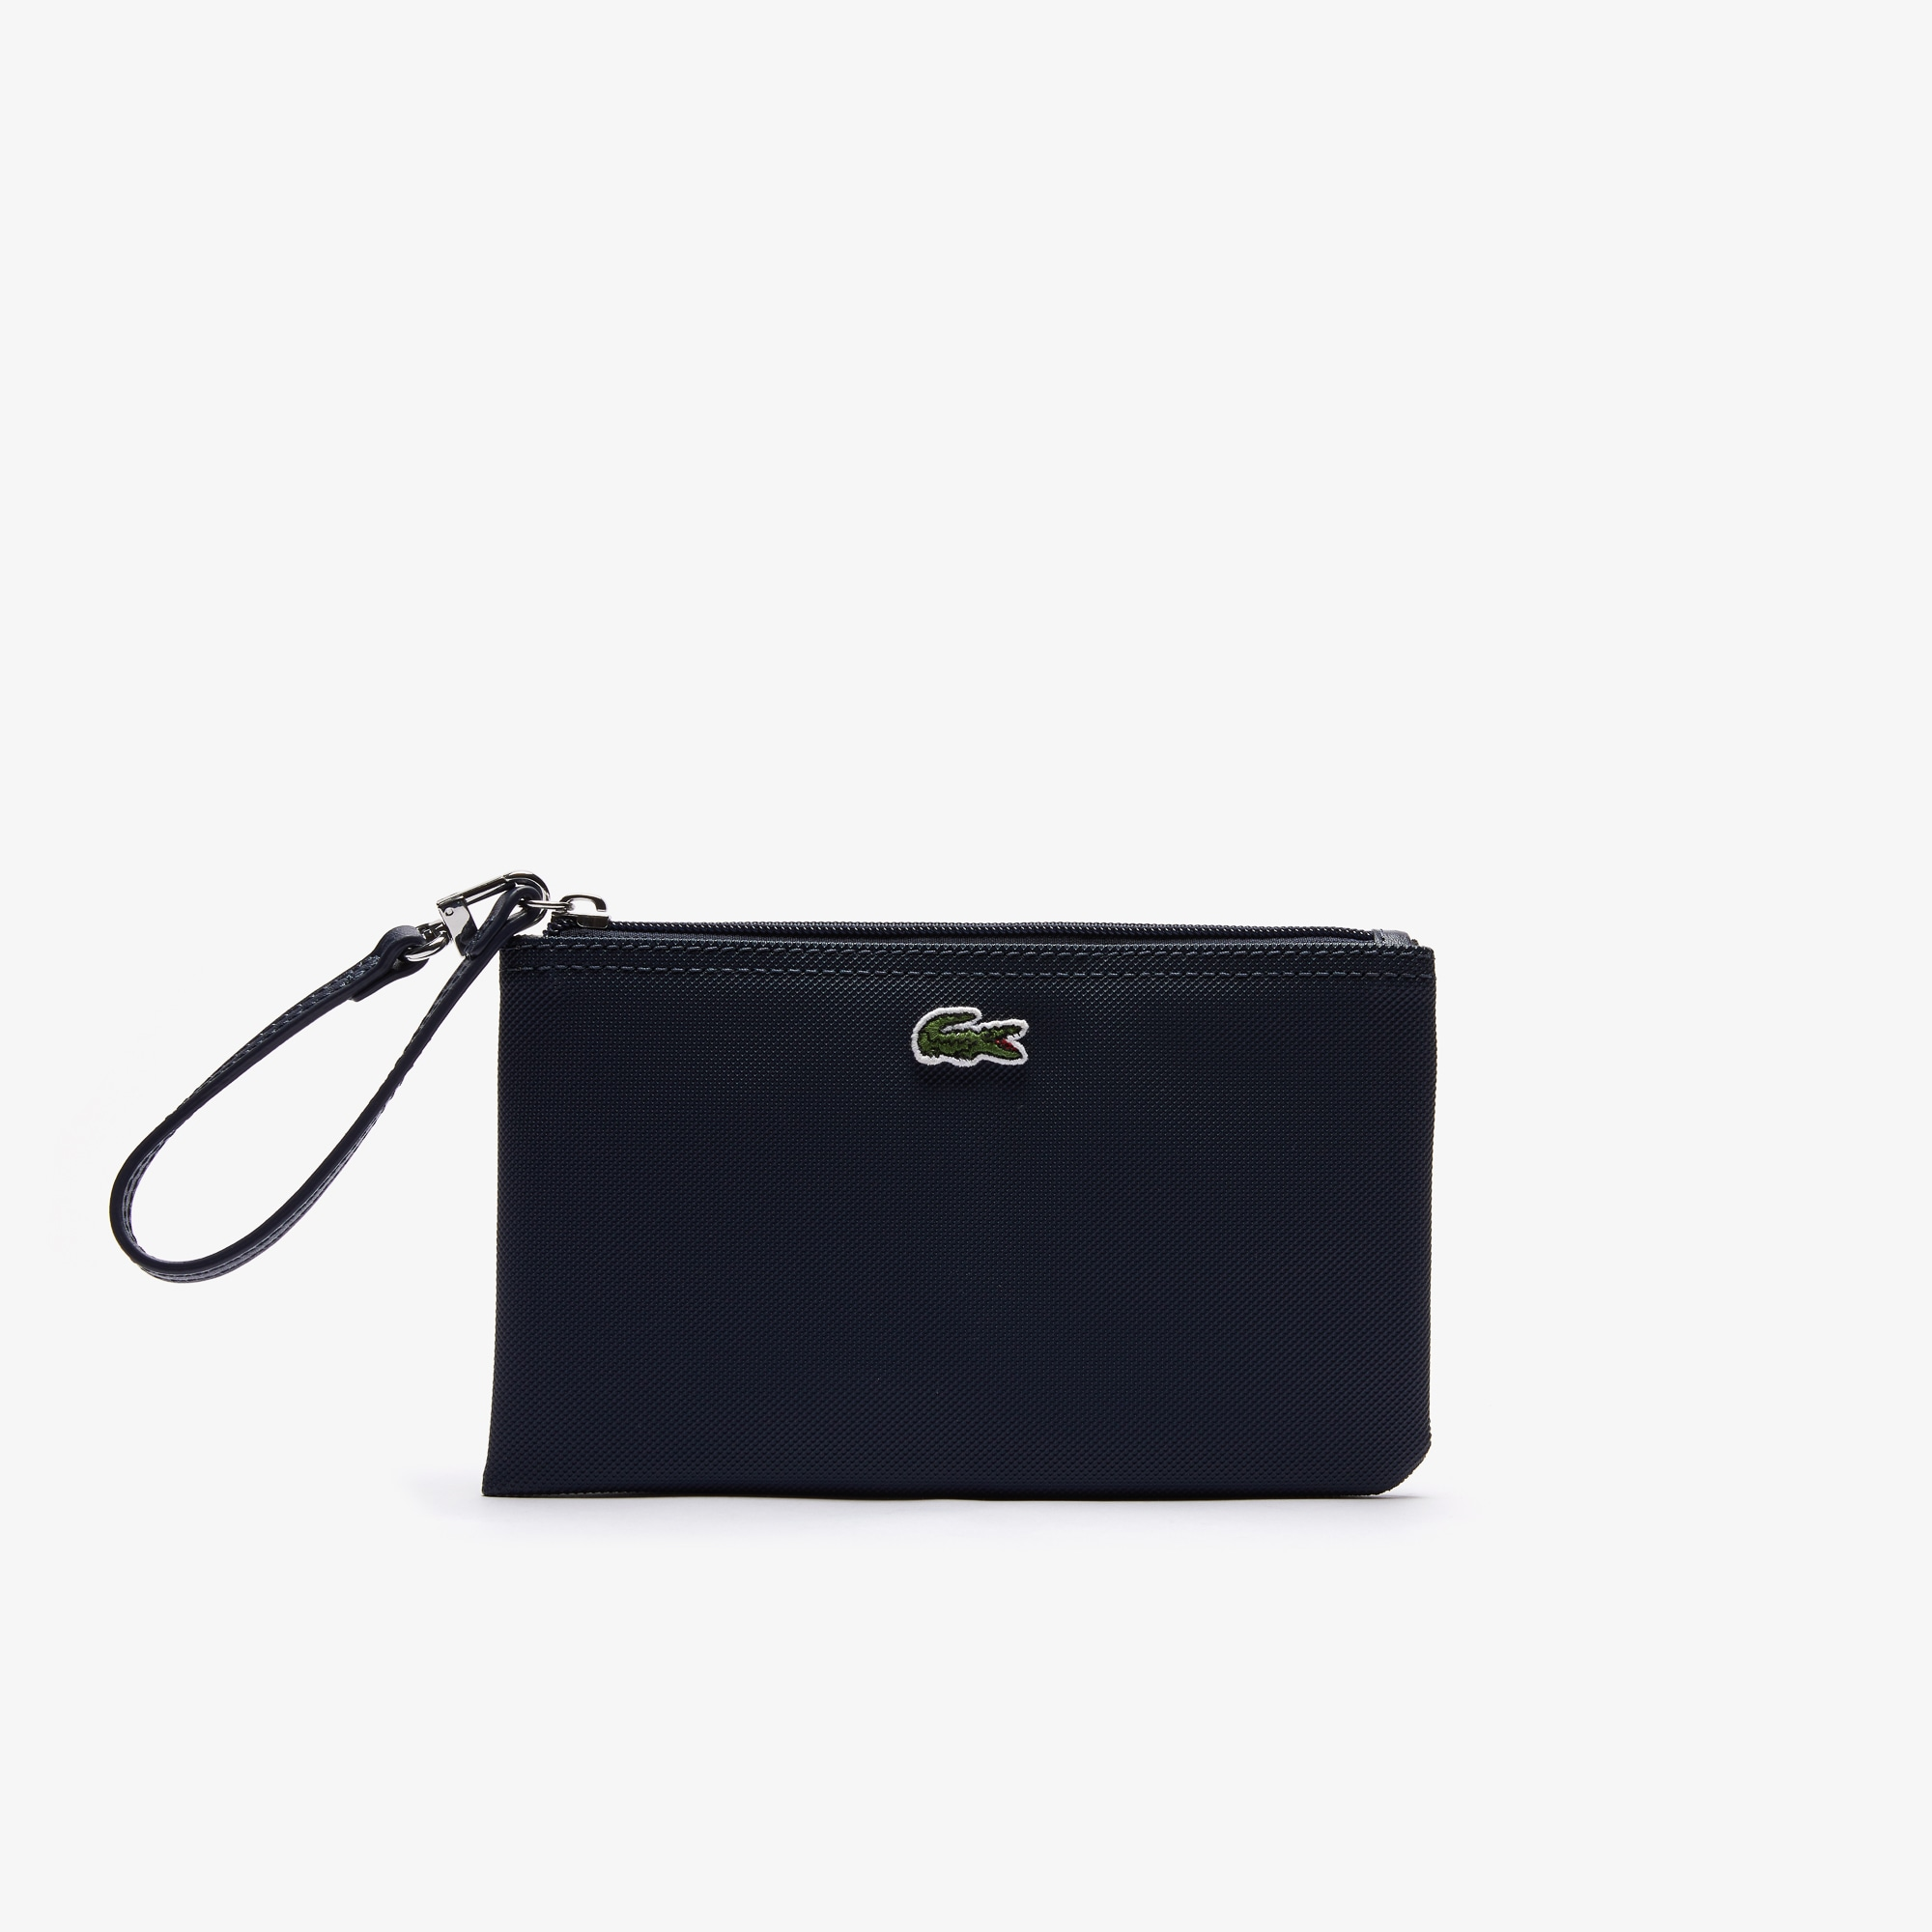 6405c310001b Small Leather Goods